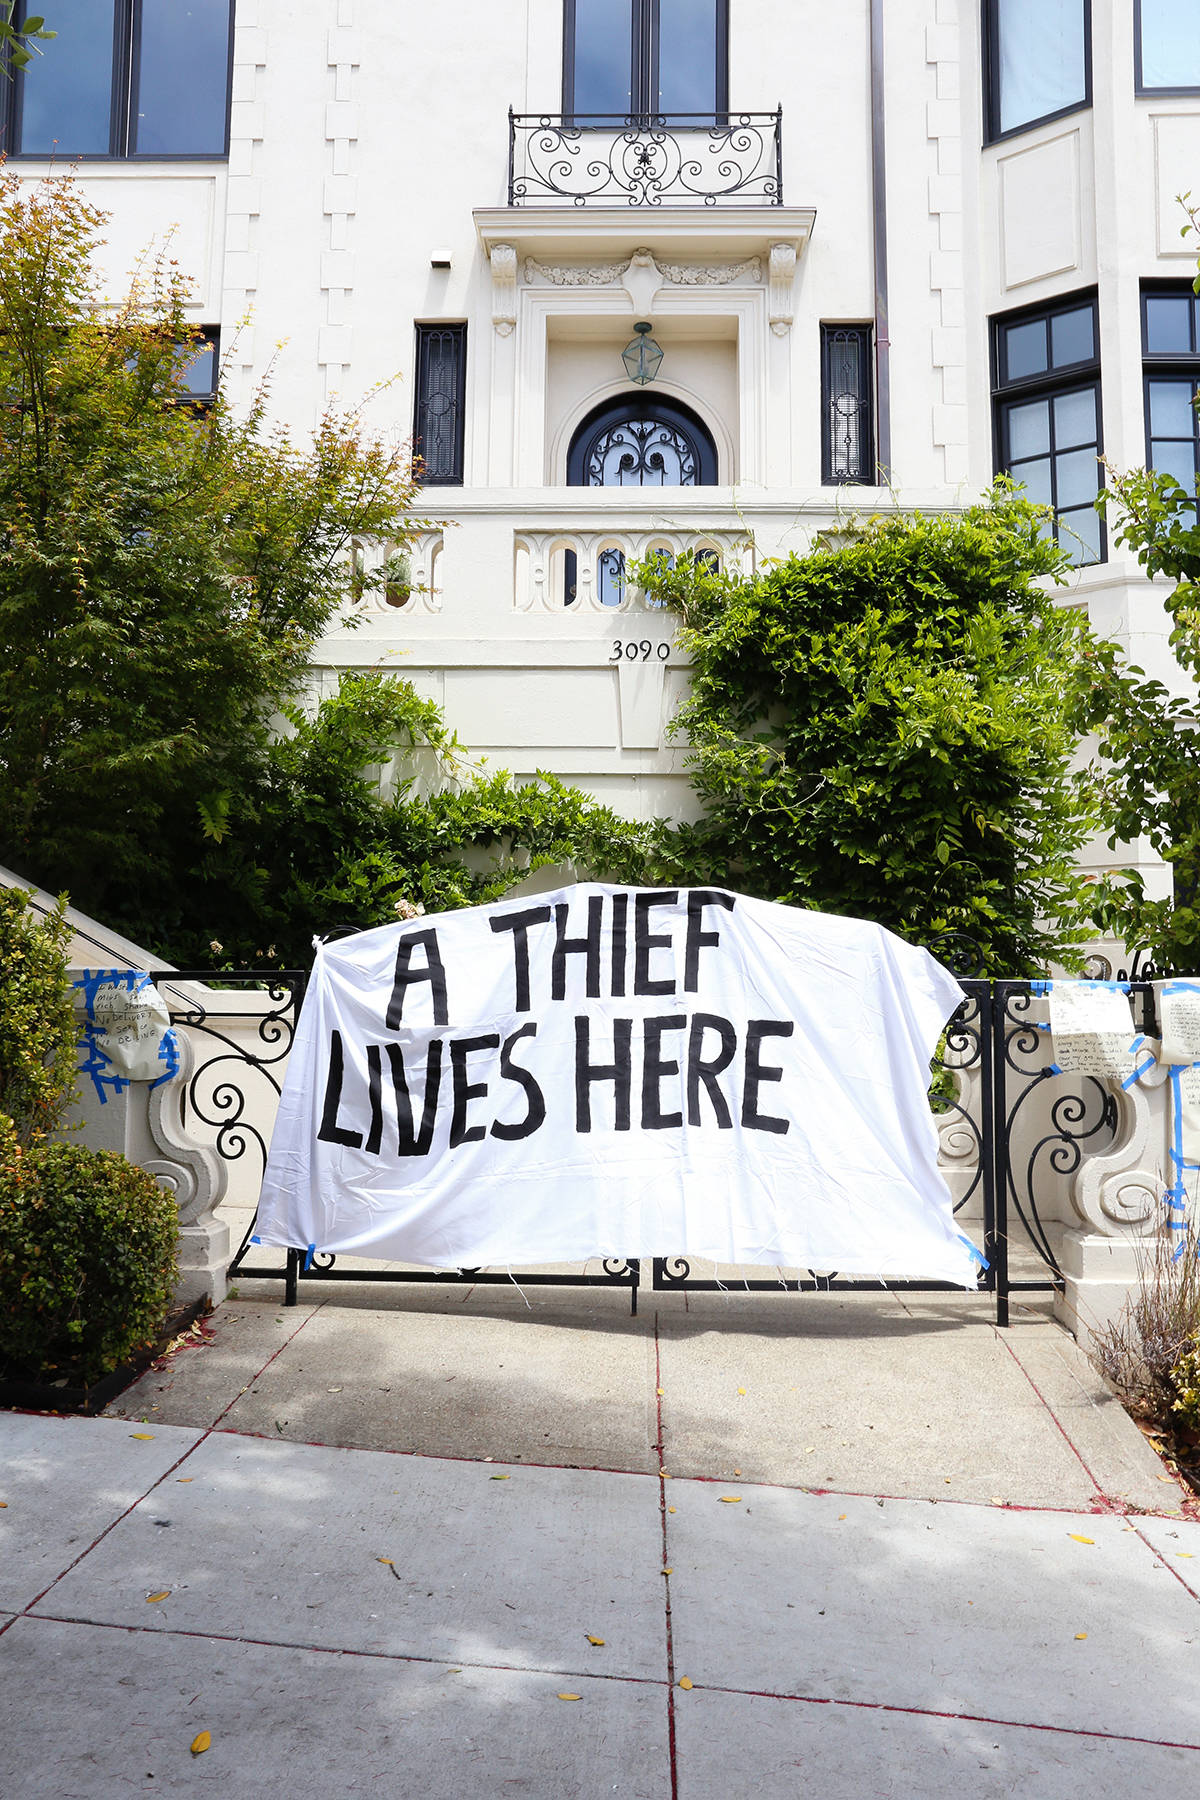 Demonstrators left a banner hanging on the gate of Uber CEO Dara Khosrowshahi's Pacific Heights home on Wednesday, June 24, 2020. (Shandana Qazi/Special to S.F. Examiner)